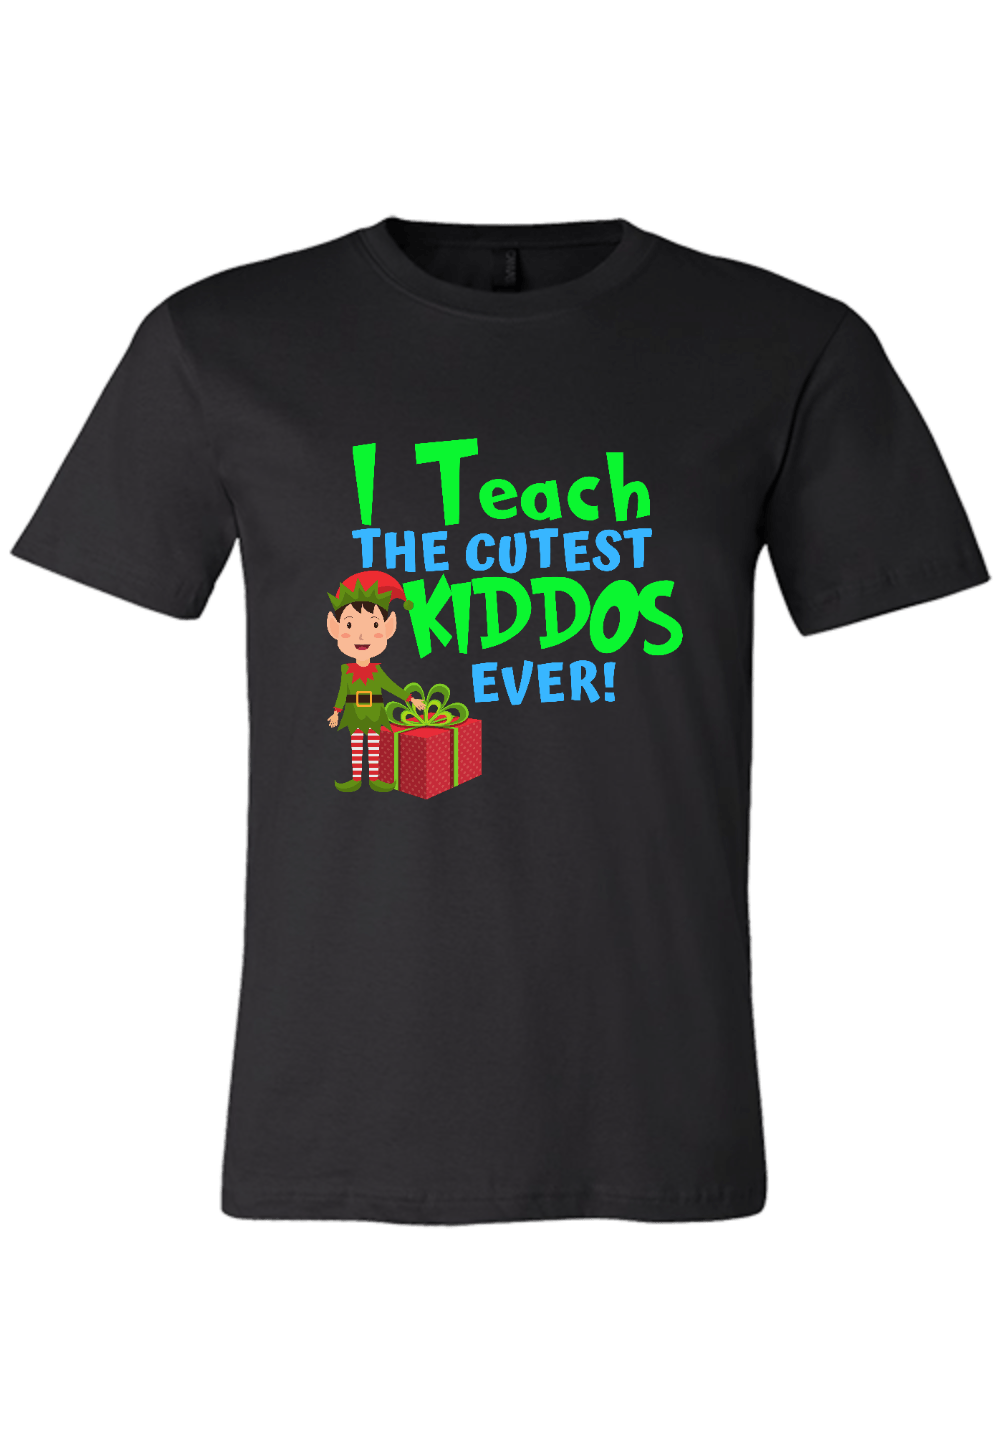 I Teach the Cutest Kiddos Ever! Christmas Shirt